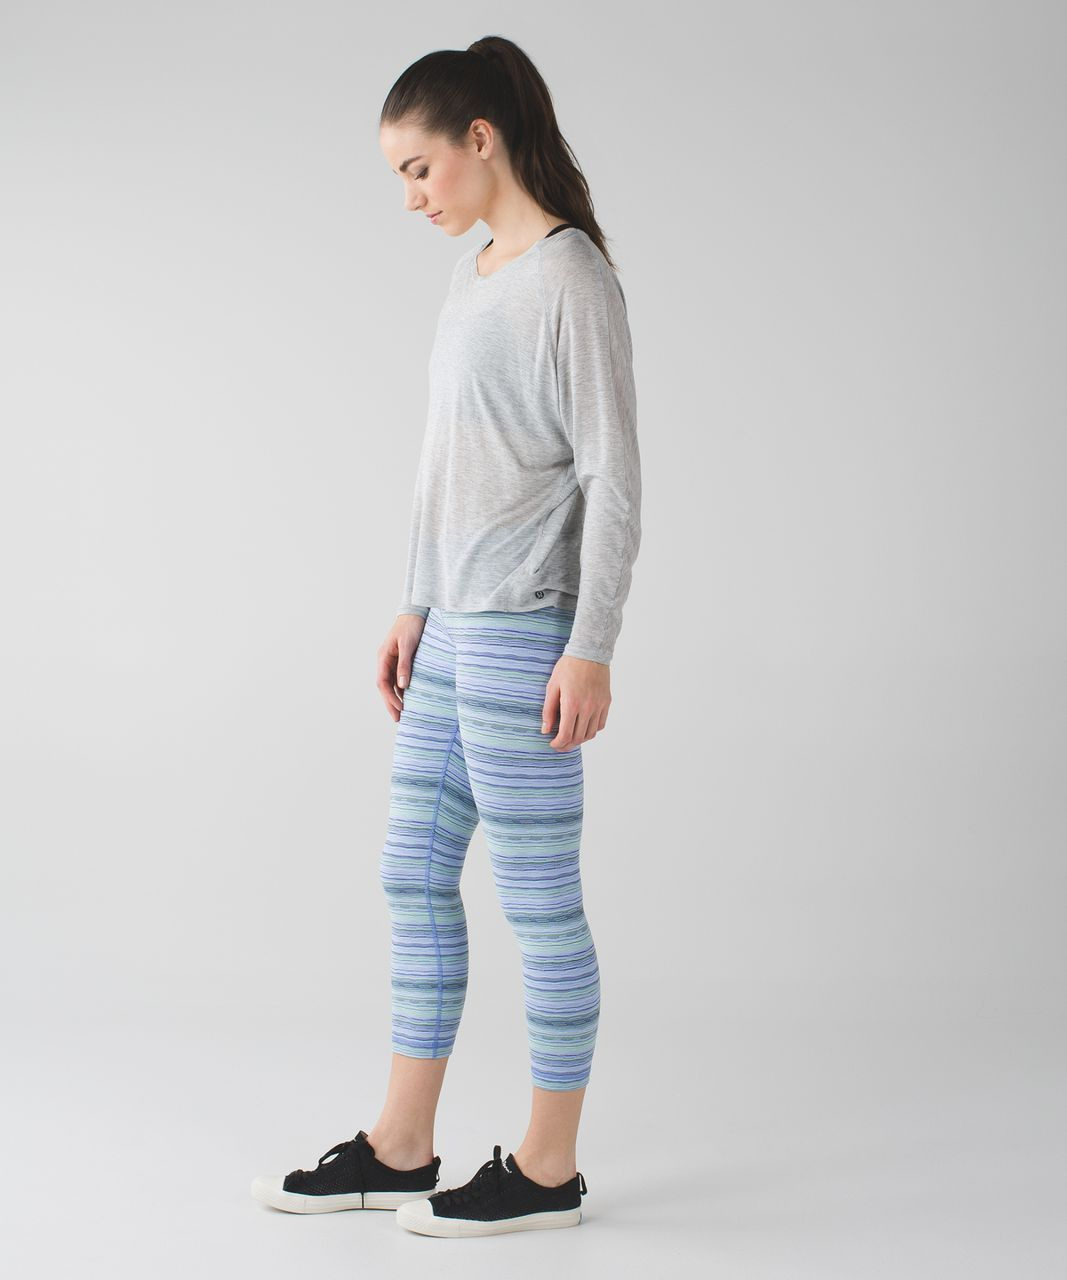 Lululemon Wunder Under Crop III - Space Dye Twist Lullaby Ray